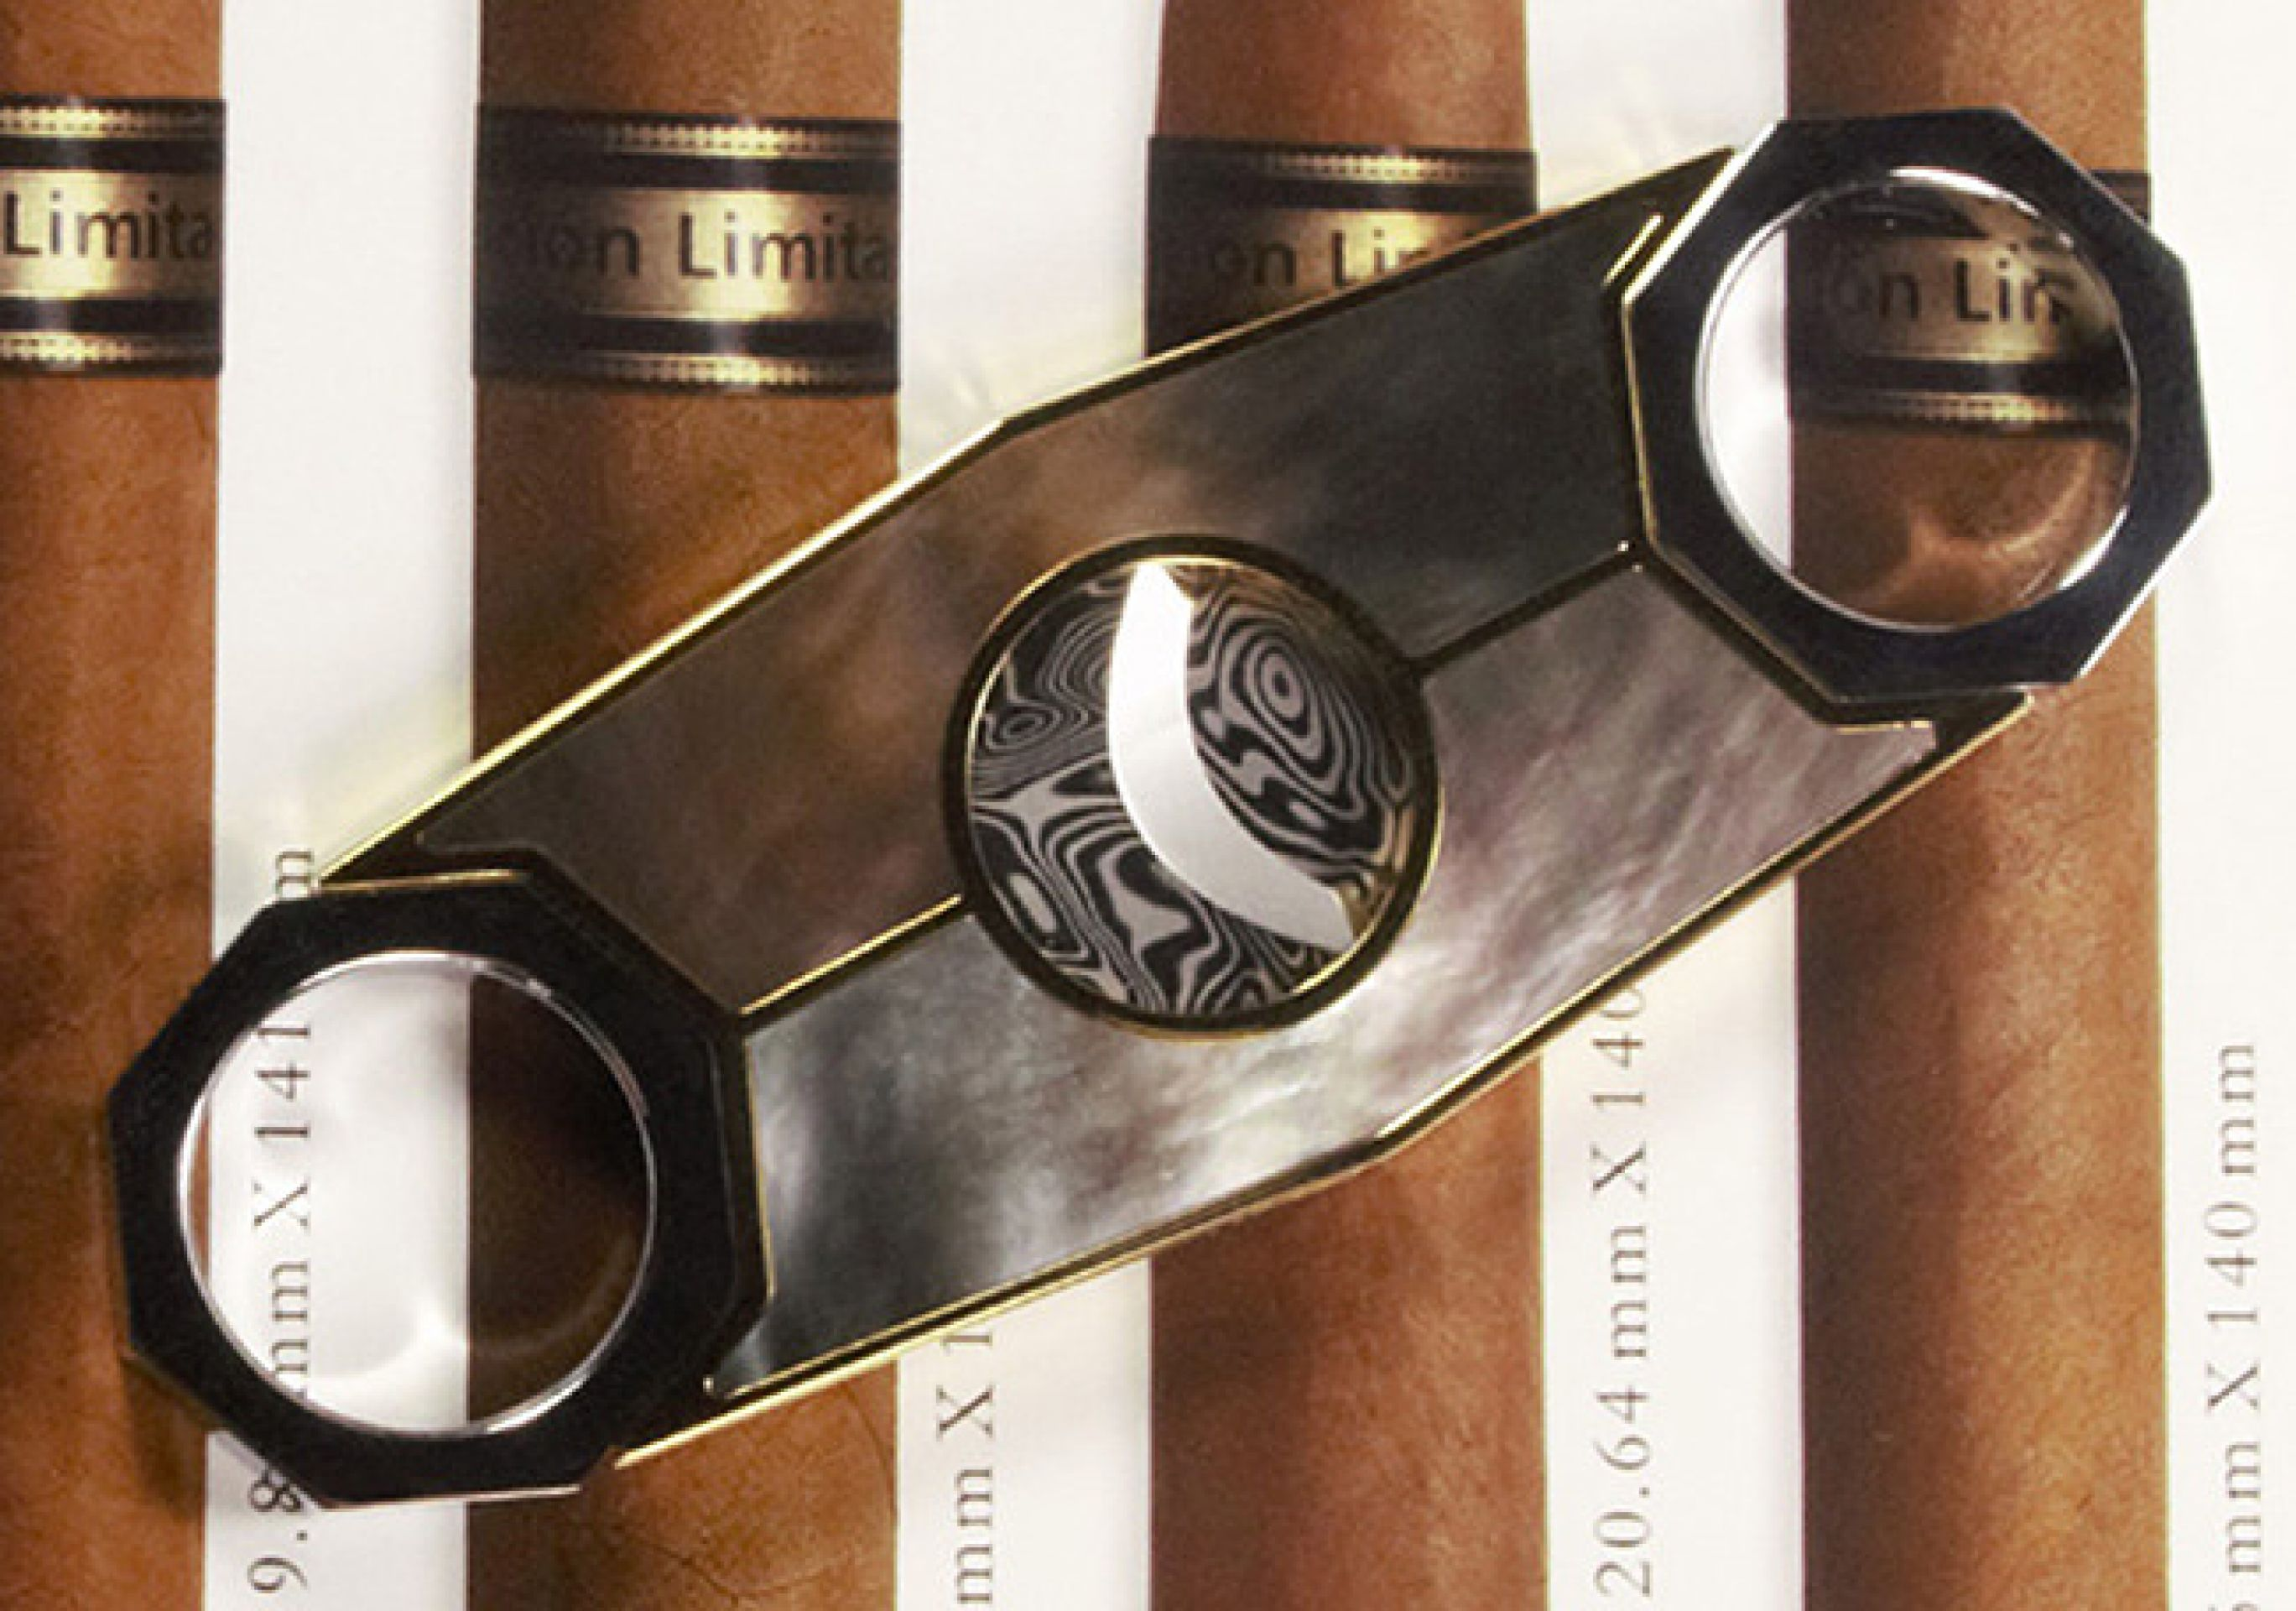 Custom Cigar Cutter - OCTA, Handcrafted Luxury Accessory by Conocedor Finland